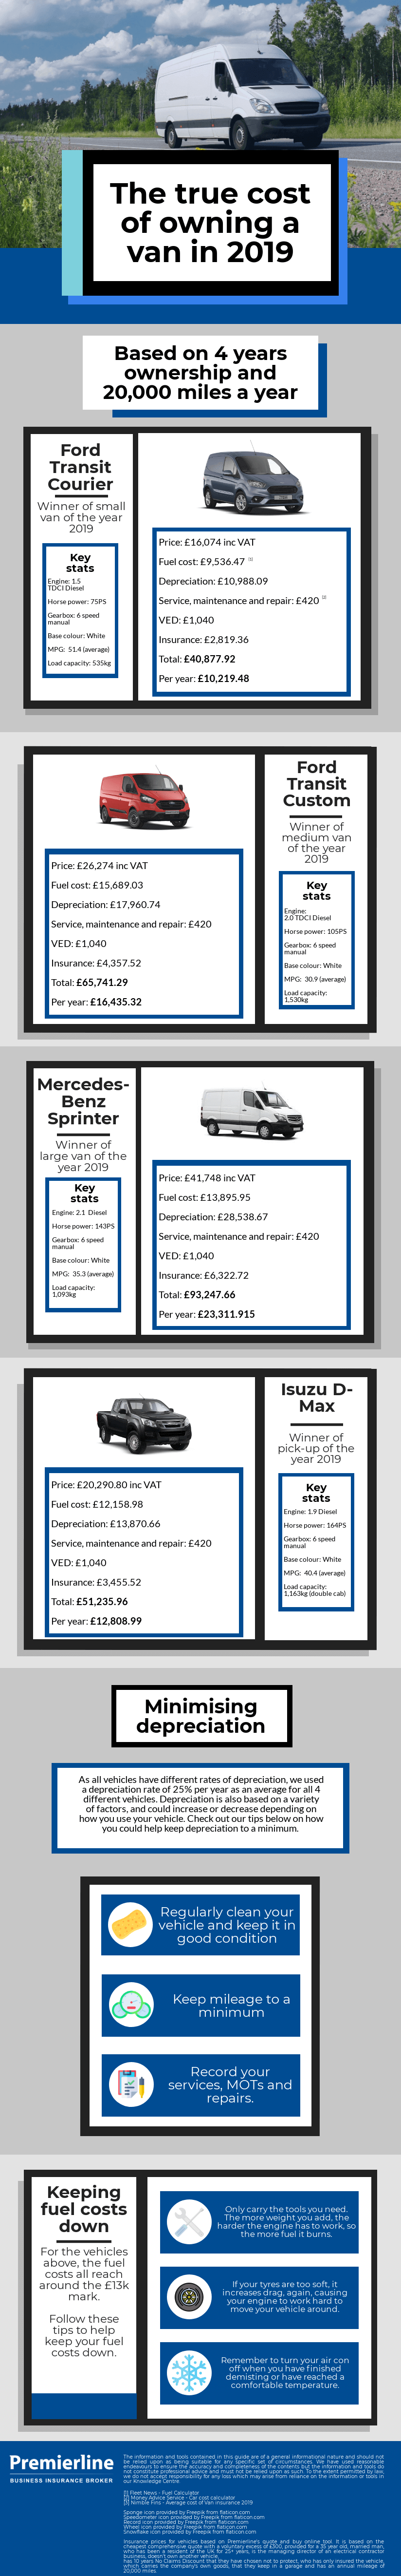 How much does it really cost to own a van?